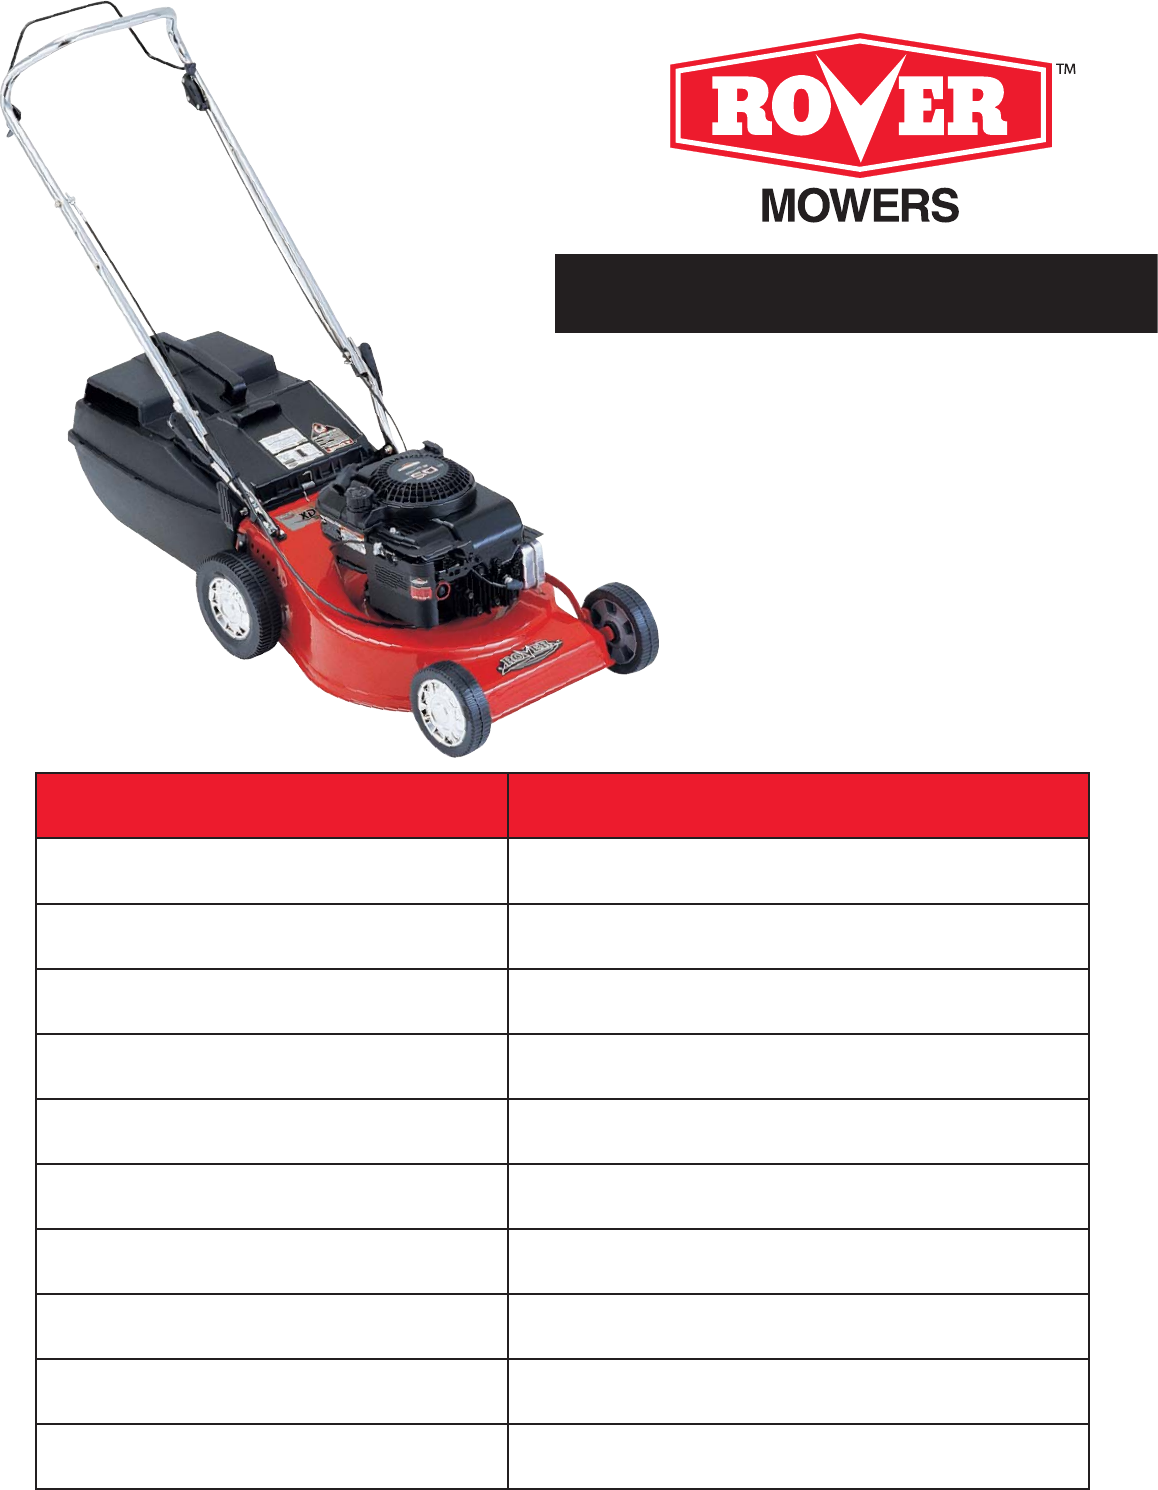 rover lawn mower 7091 user guide manualsonline com rh lawnandgarden manualsonline com Manual Push Aerator Manual Aerator Lowe's